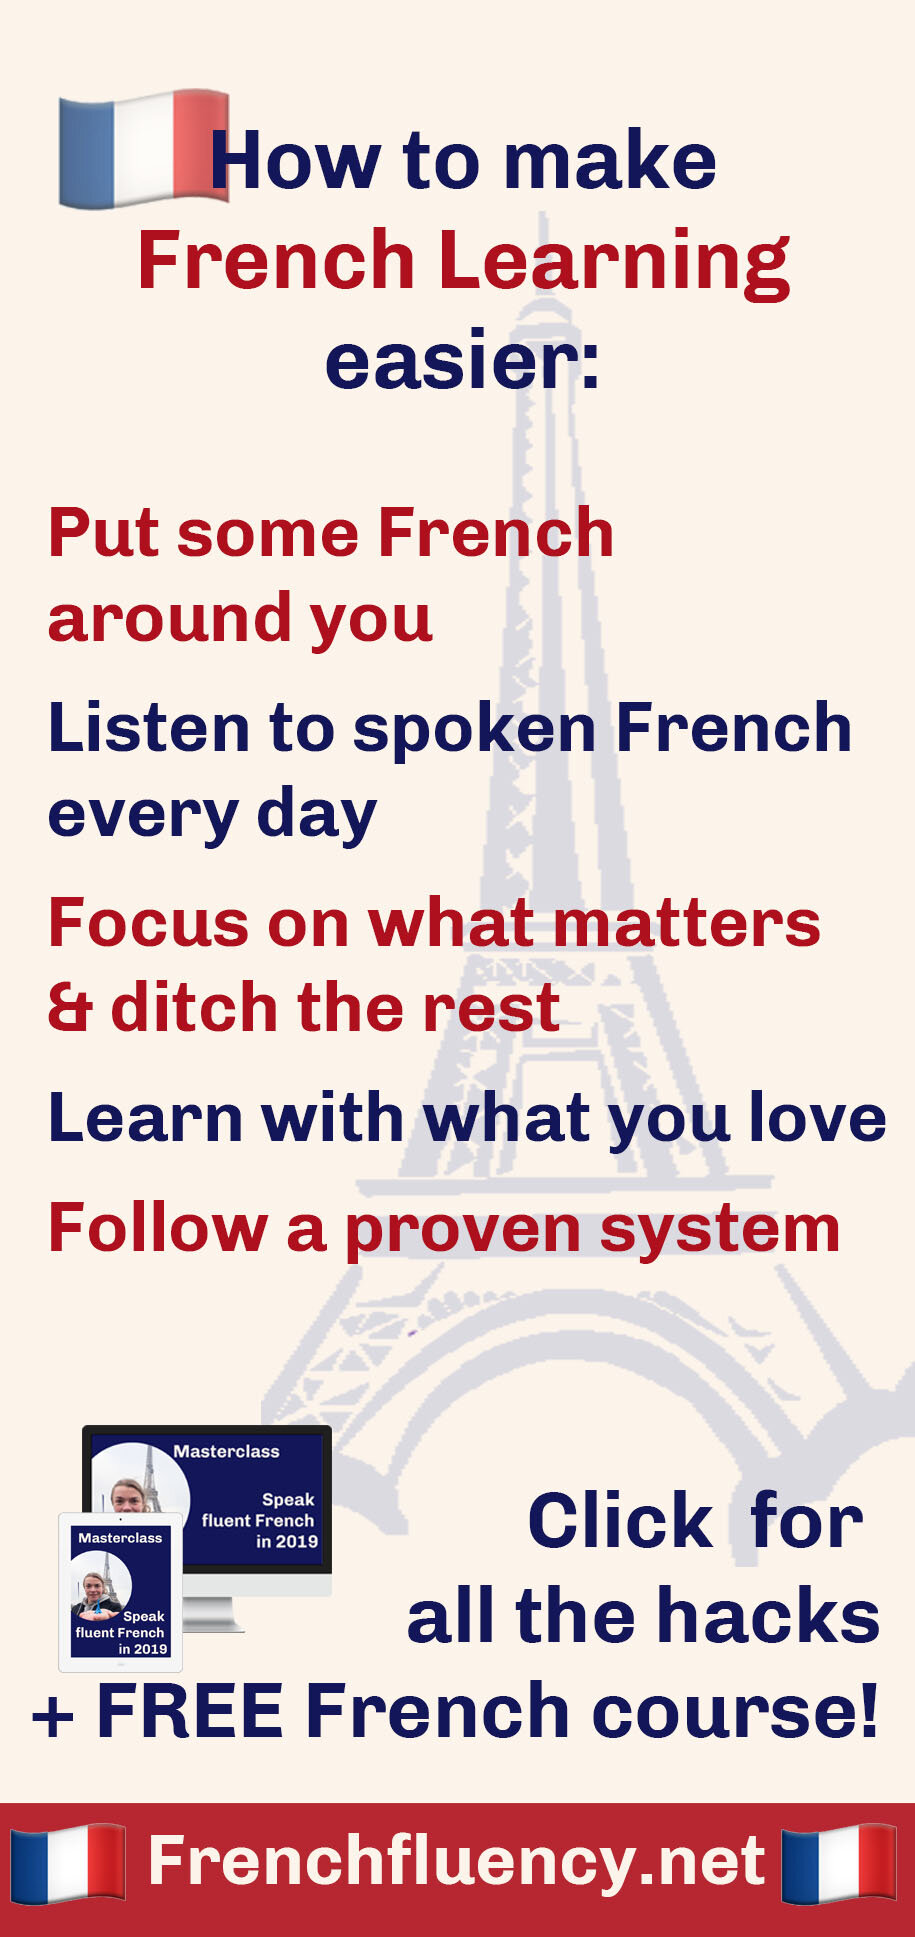 Are you learning French?  Here's some good news: there are many little hacks that you can use to make French learning easier for yourself.     In this article I'm sharing 5 of the most simple hacks you can start using today to learn French faster, more easily and have more fun doing it. Click through to read my best French learning tips.  #learnfrench #frenchlearning #LearnFrenchFast #fluentfrench #frenchvocabulary #frenchgrammar